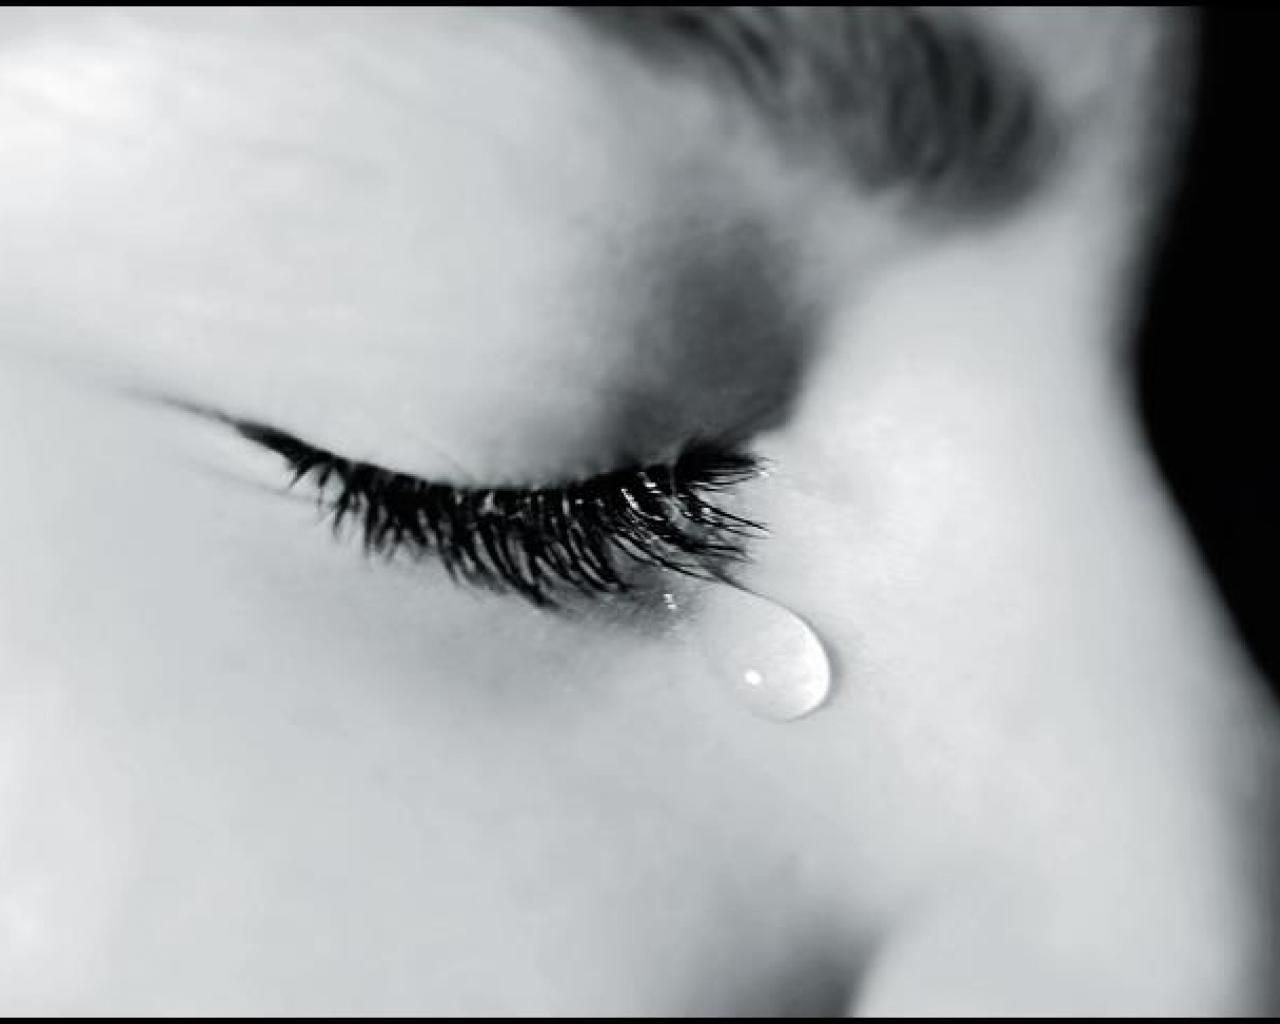 1280x1024 Tears In Eyes | Desktop Backgrounds